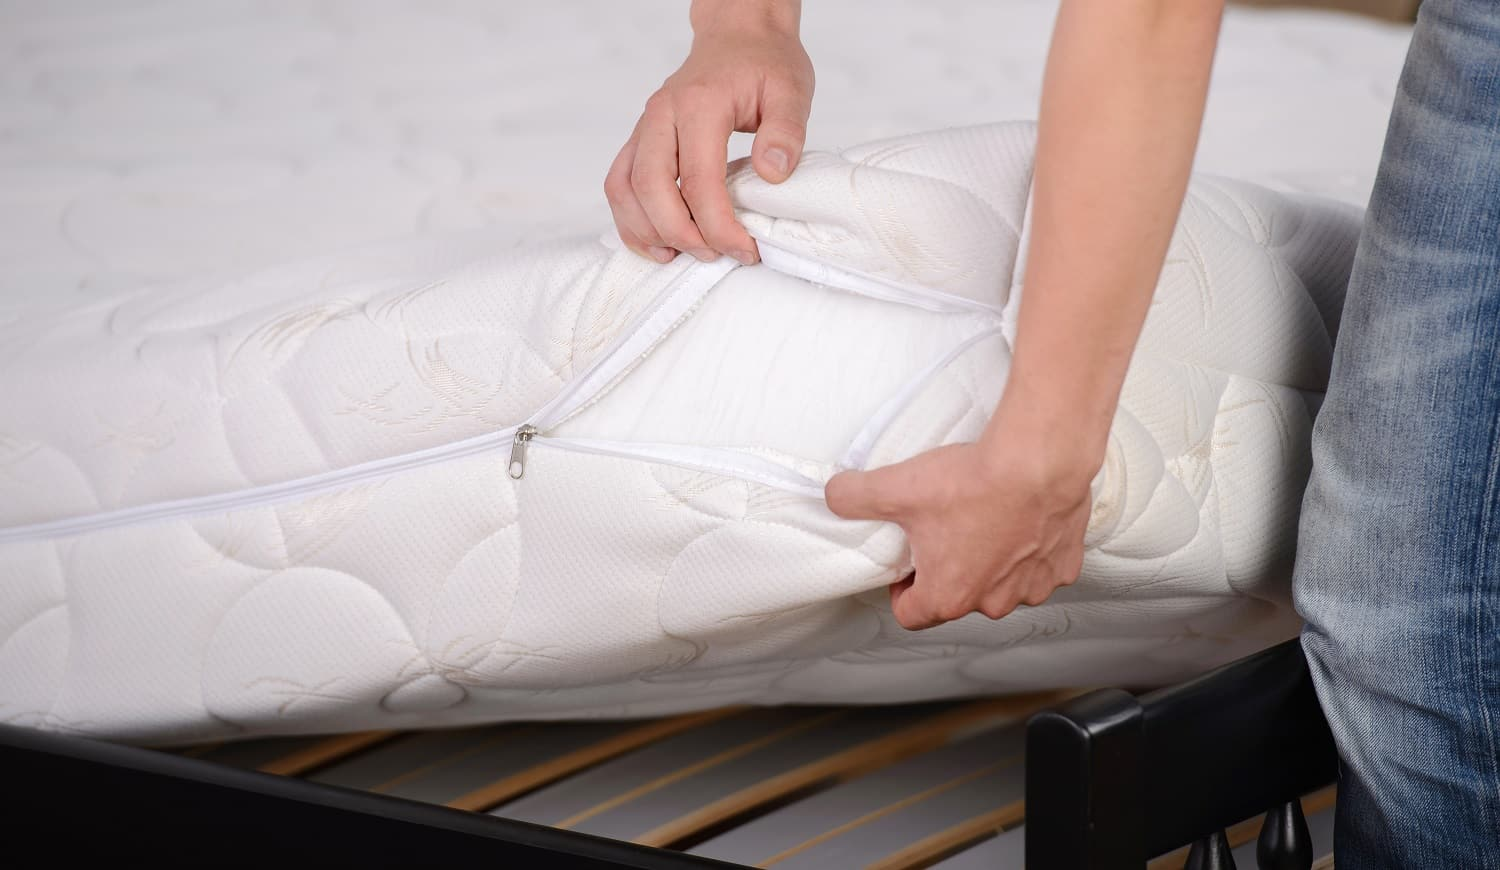 Man holding demonstrations quality mattress in the bedroom.